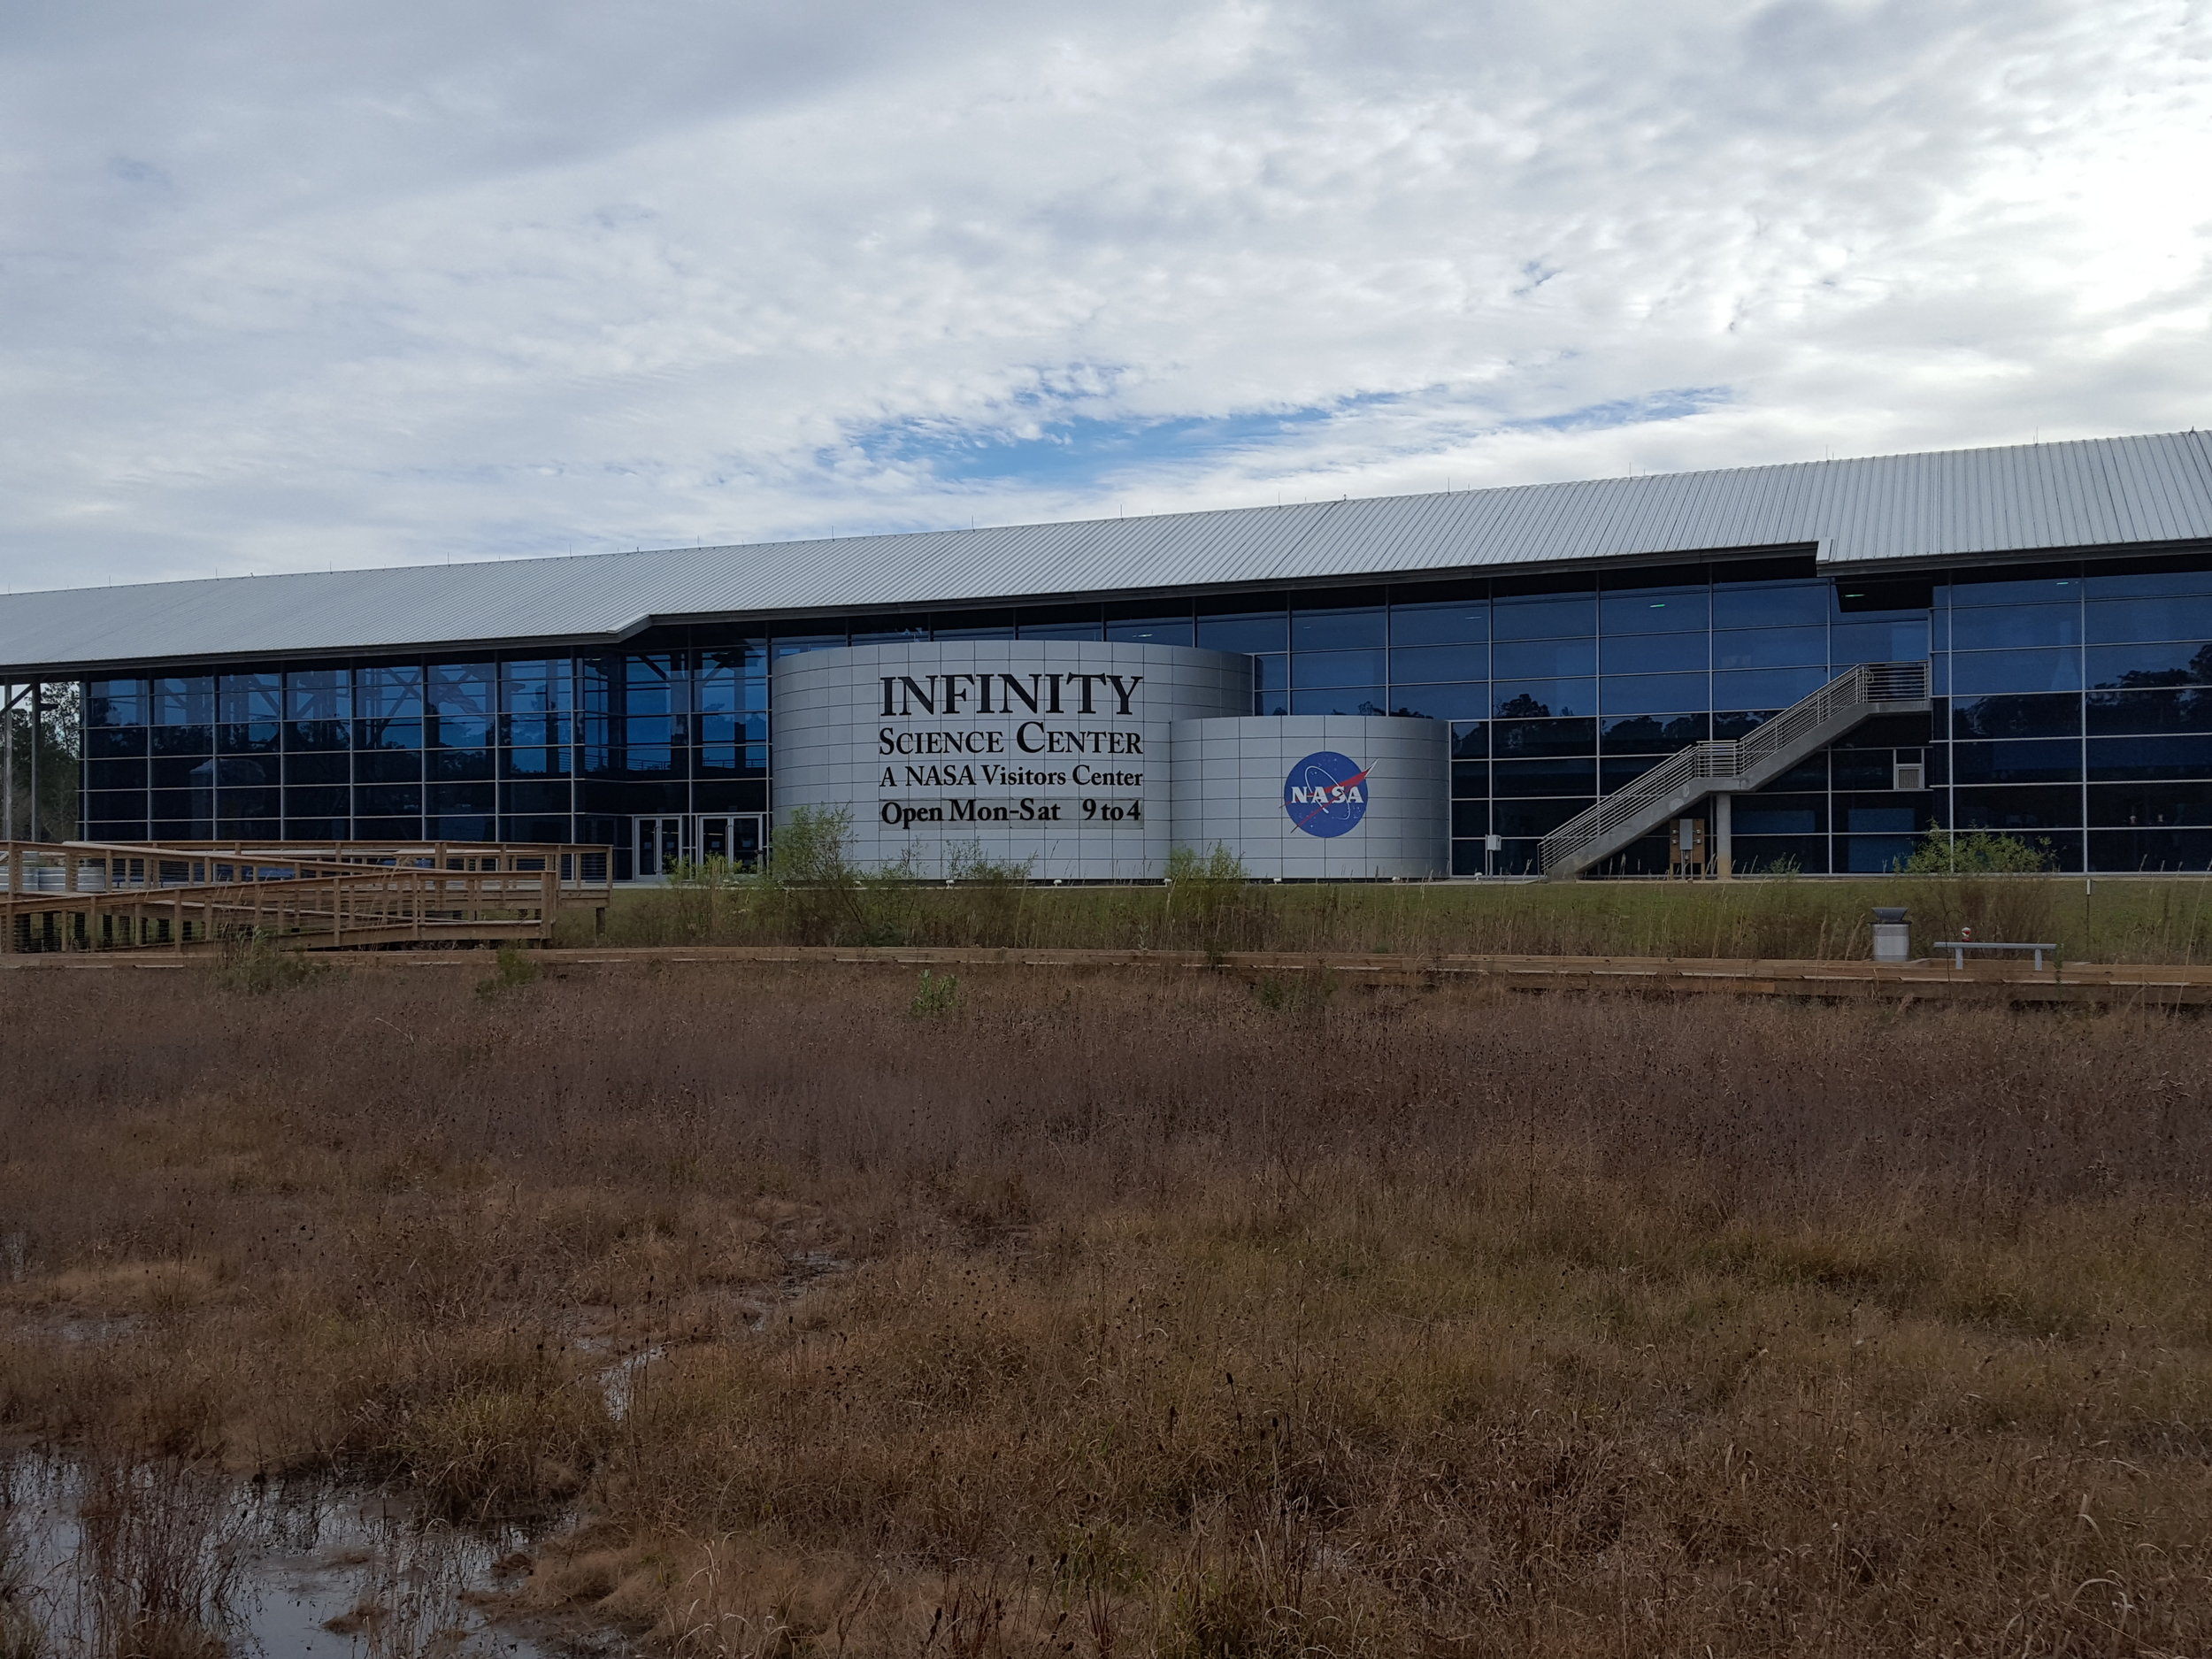 Front view of INFINITY Science Center in Hancock County, Mississippi